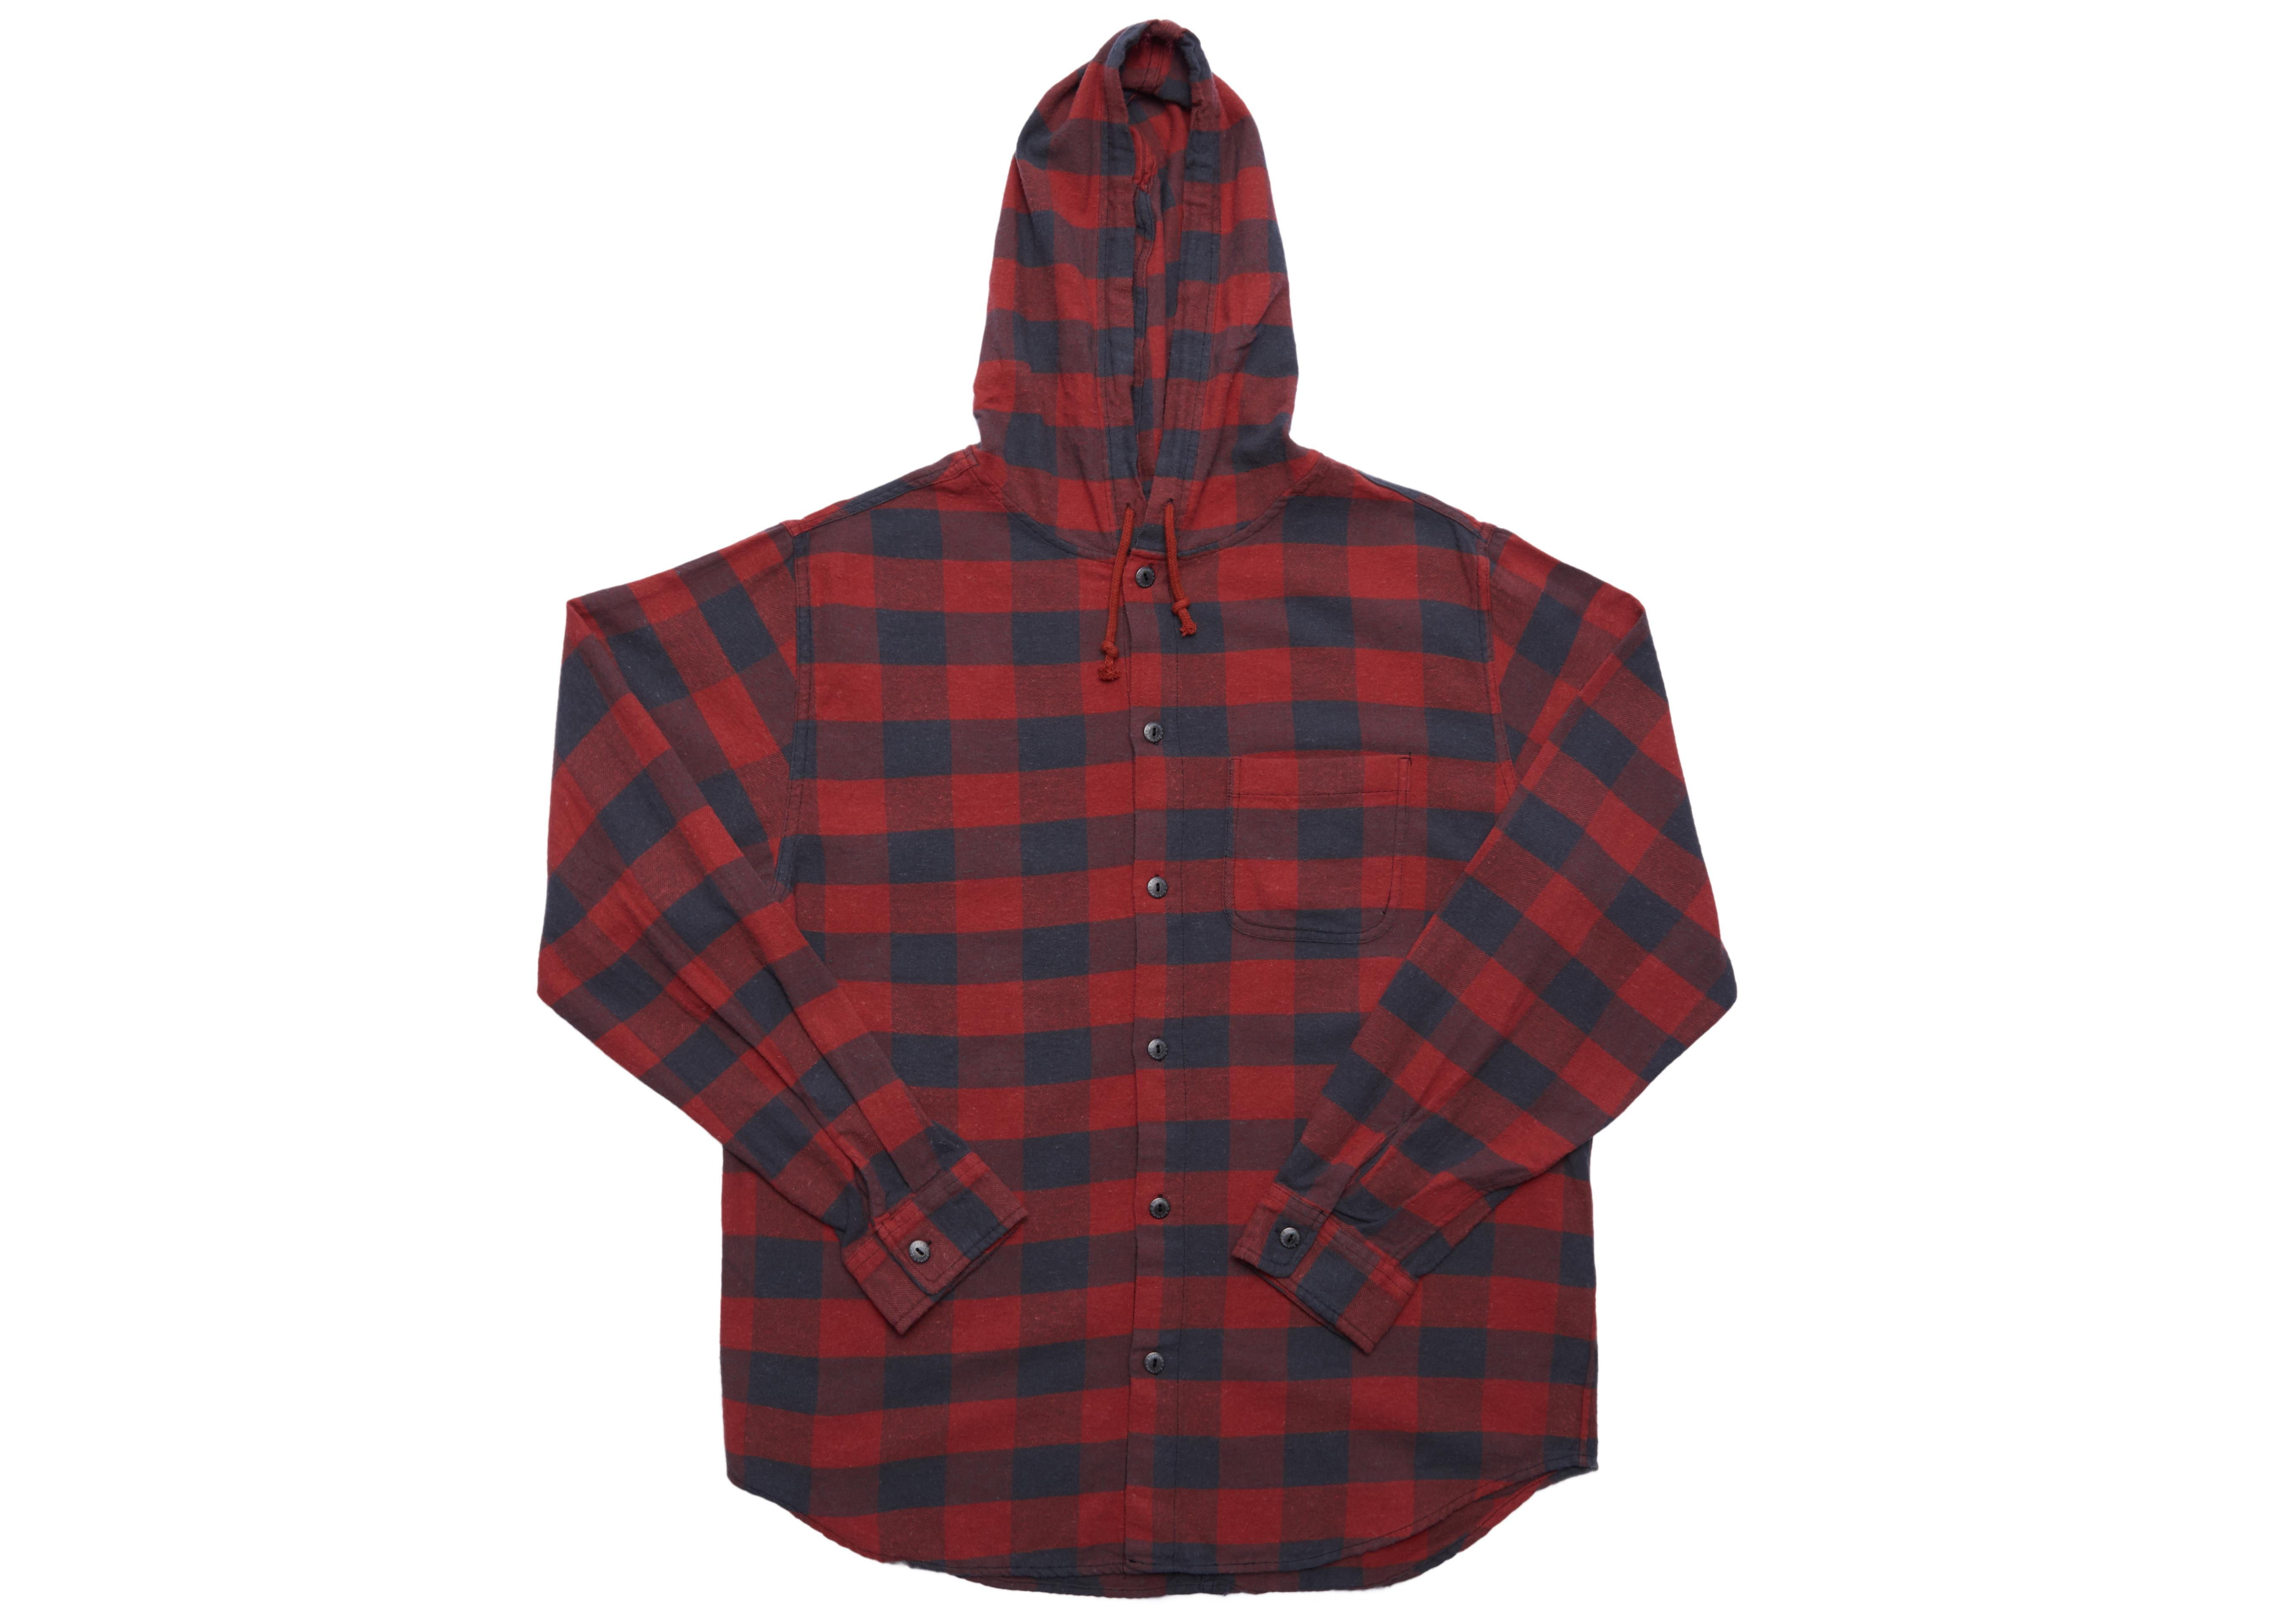 e4d51666df0 Lyst - Supreme Hooded Buffalo Plaid Flannel Shirt Red in Red for Men